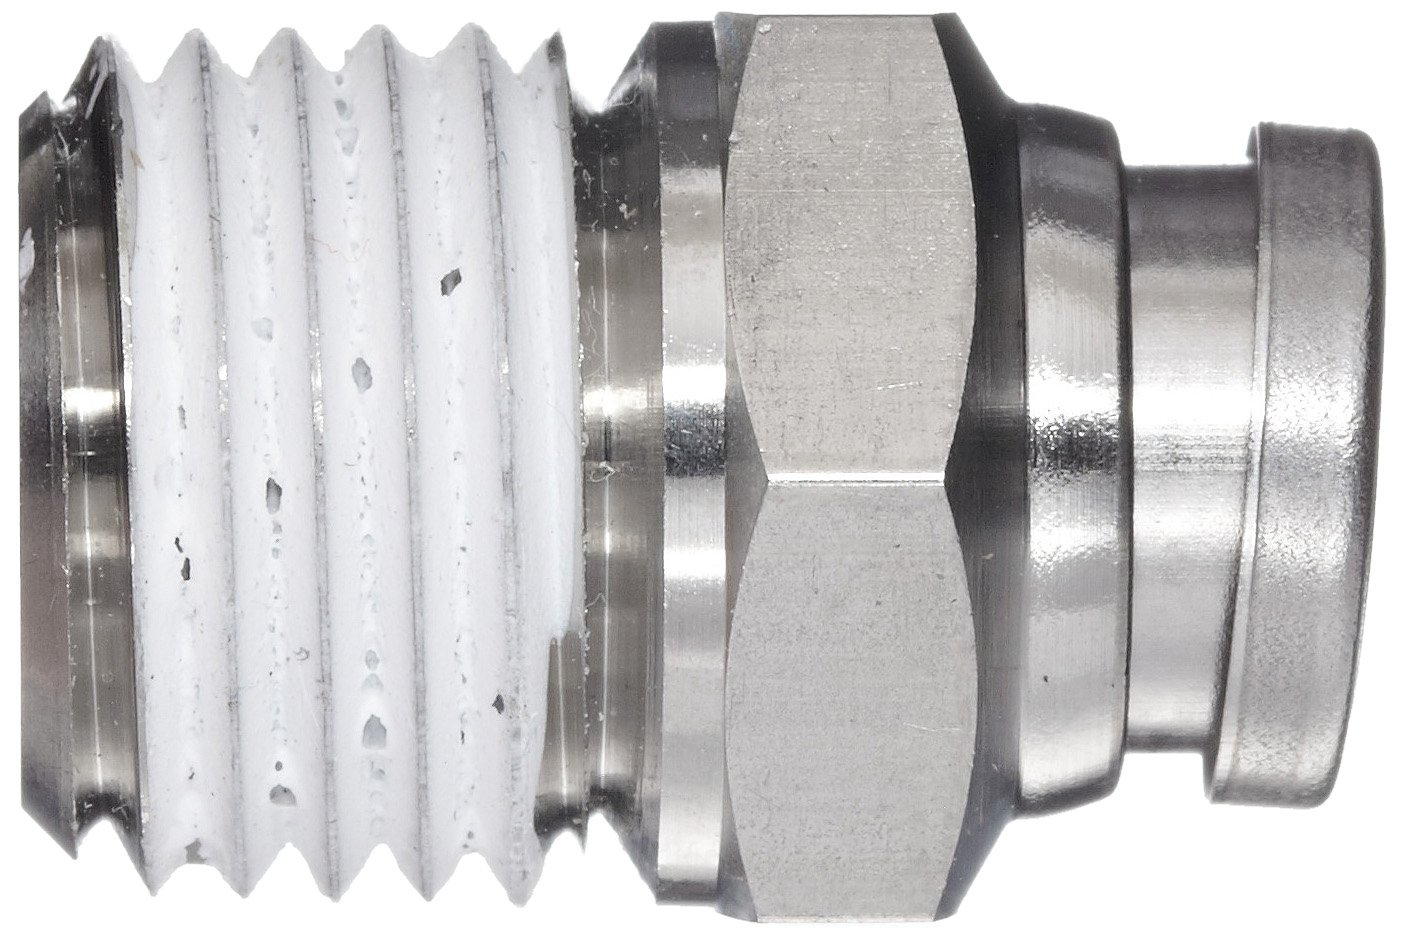 1//4 Tube OD x 1//4 NPT Male Connector with Sealant SMC KQG2 Series Stainless Steel 316 Push-to-Connect Tube Fitting